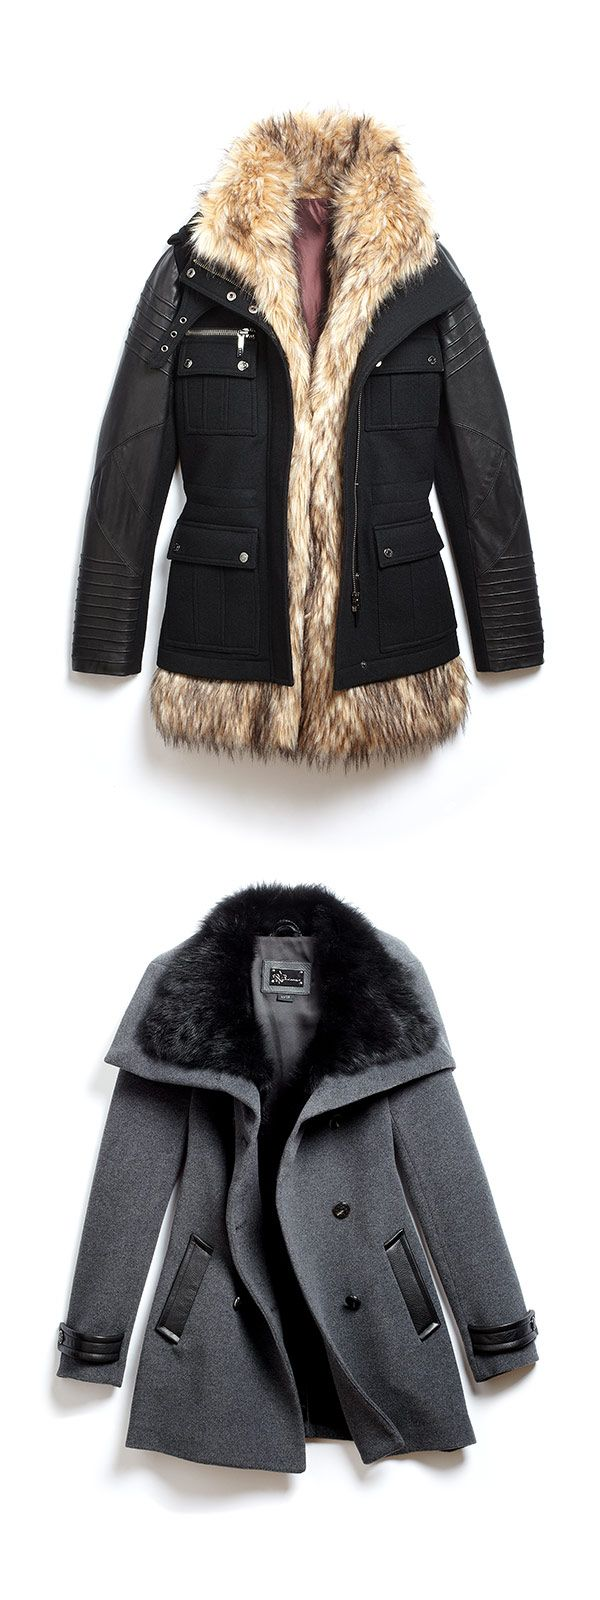 Dual jackets get you from fall to winter with ease. (Ashley B/Mackage)